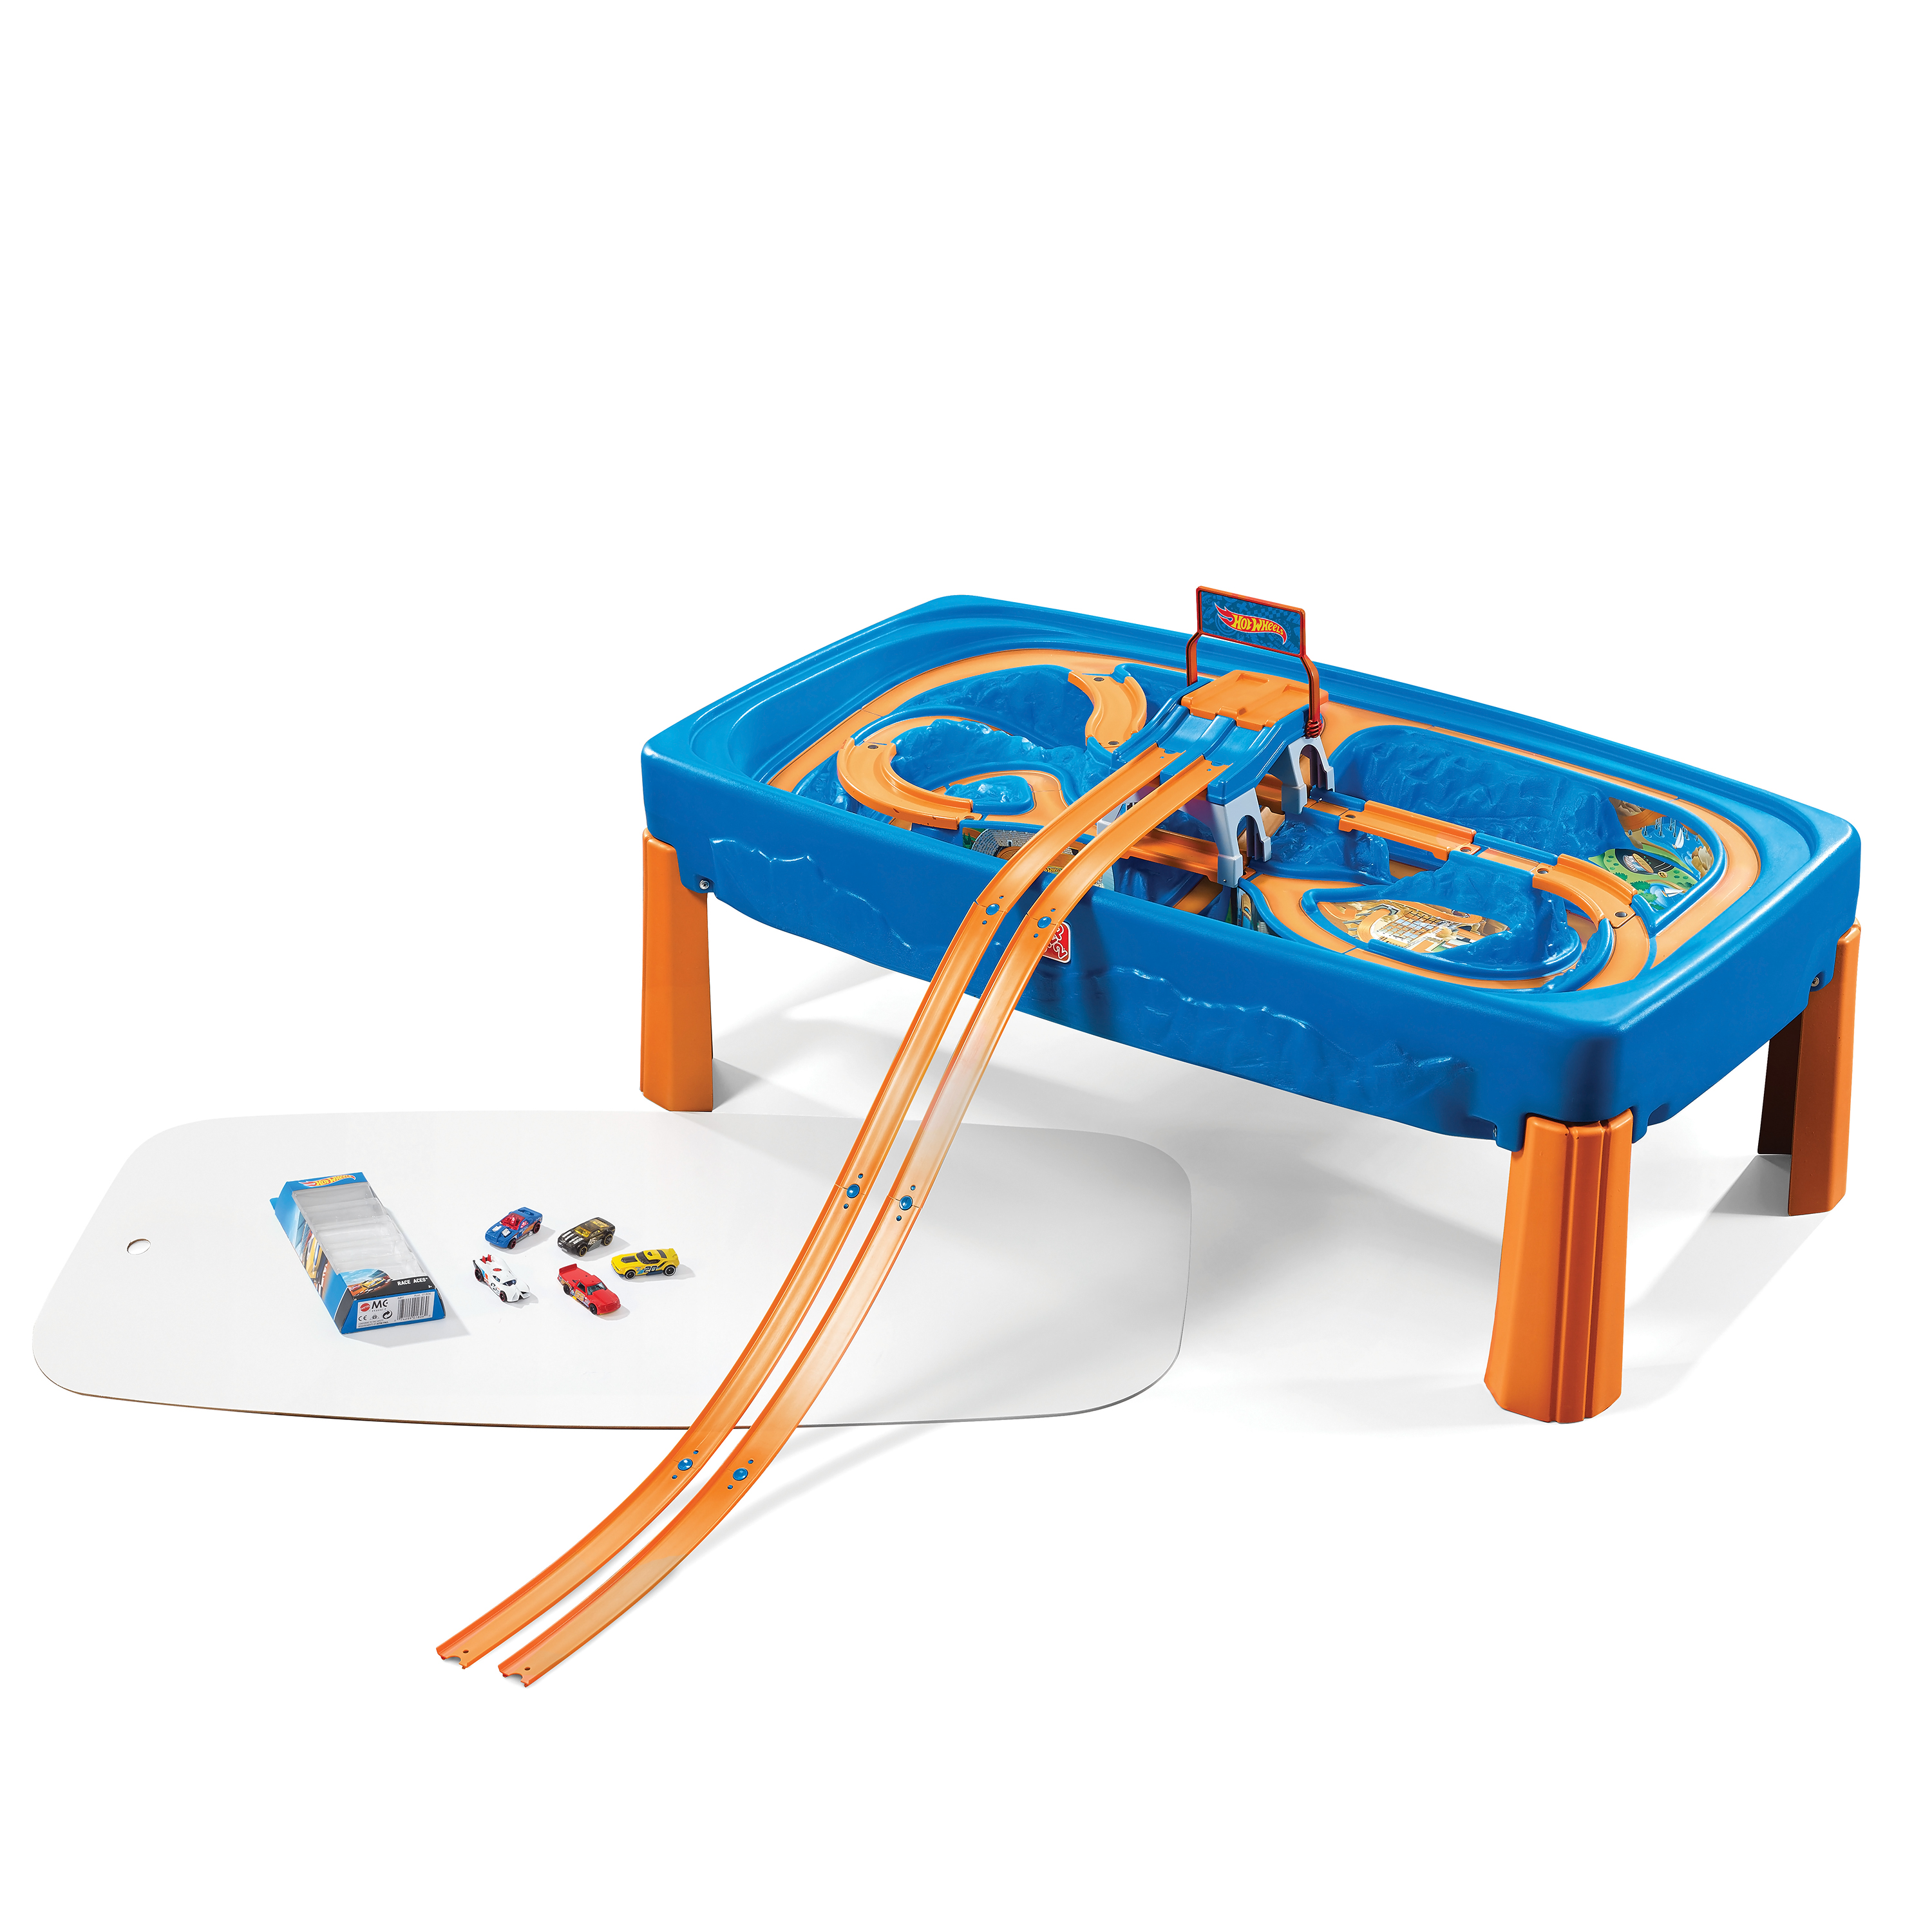 Step2 Children Kids Hot Wheels Car and Race Track Toy and Activity Play Table